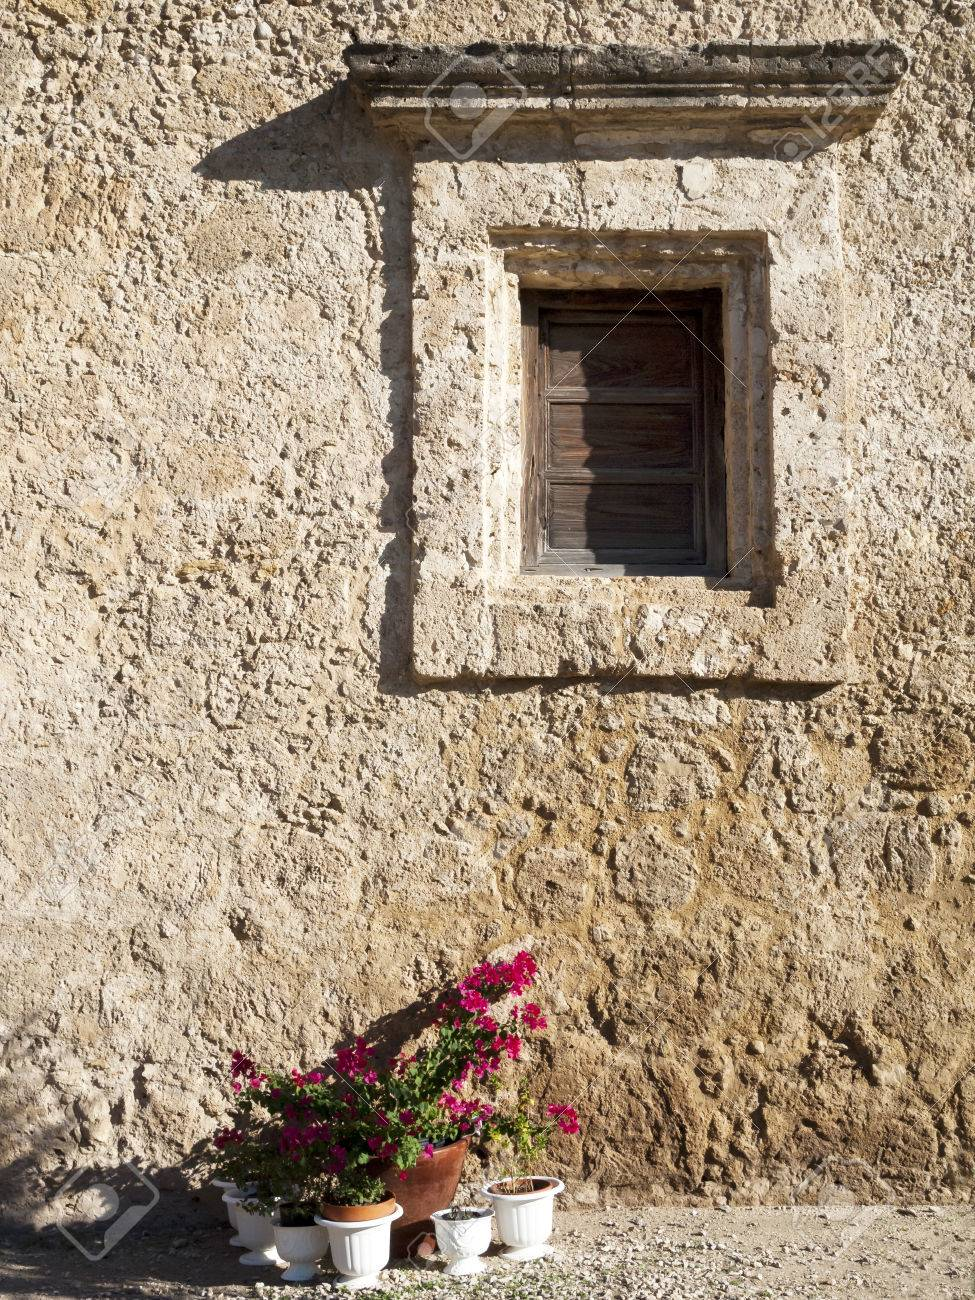 Rustic Adobe Wall With Decorative Window Frame Stock Photo, Picture ...